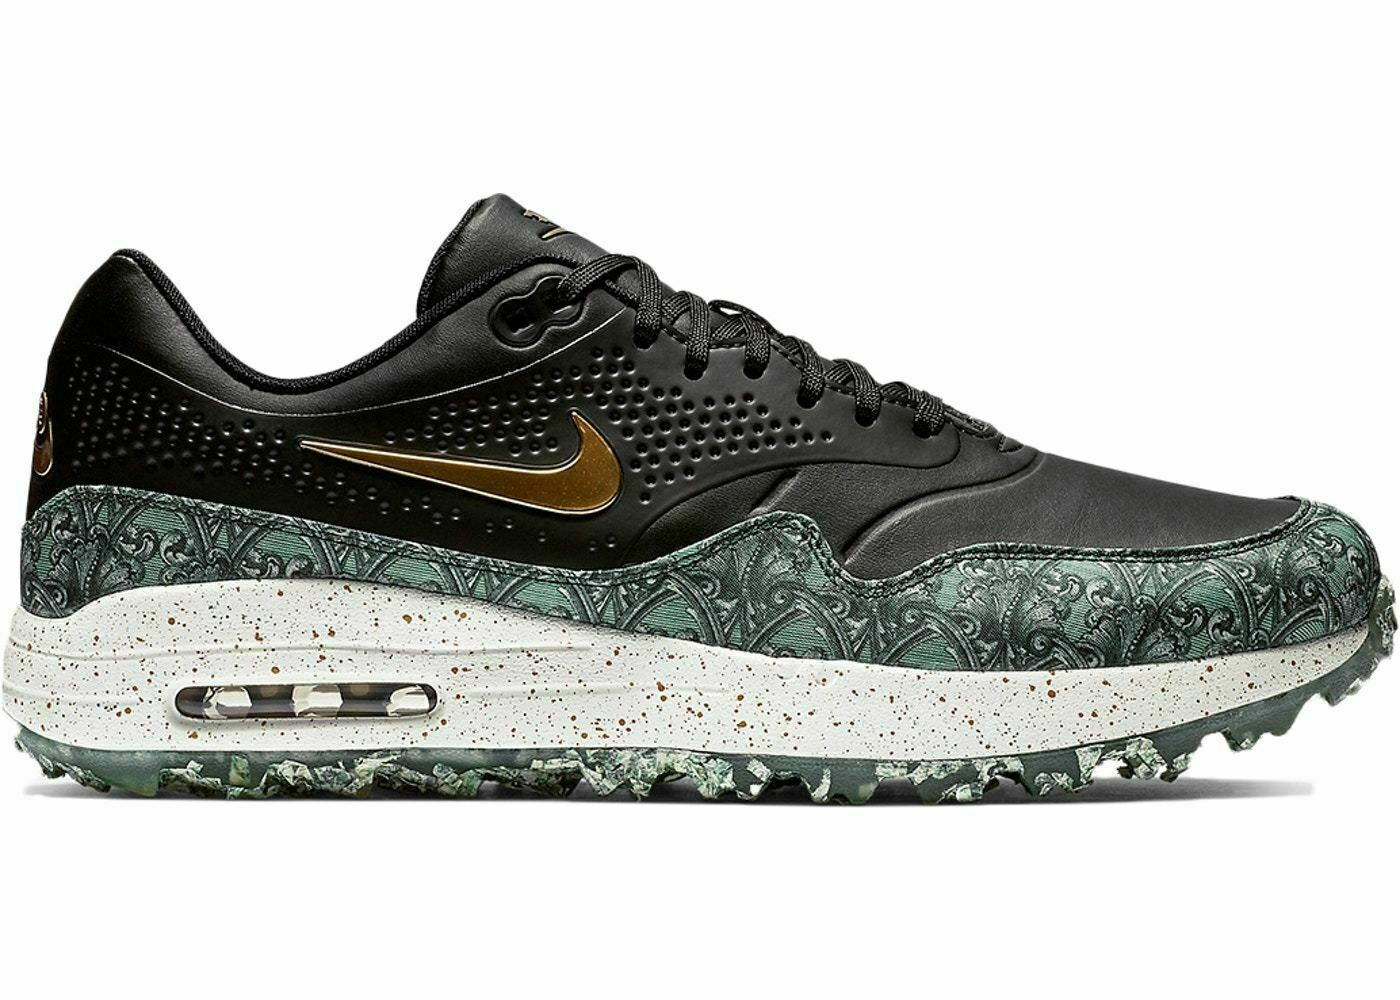 Nike Air Max 1 G NRG Golf Shoes Size 10.5 Payday Paid in Full Money Bq4804 001